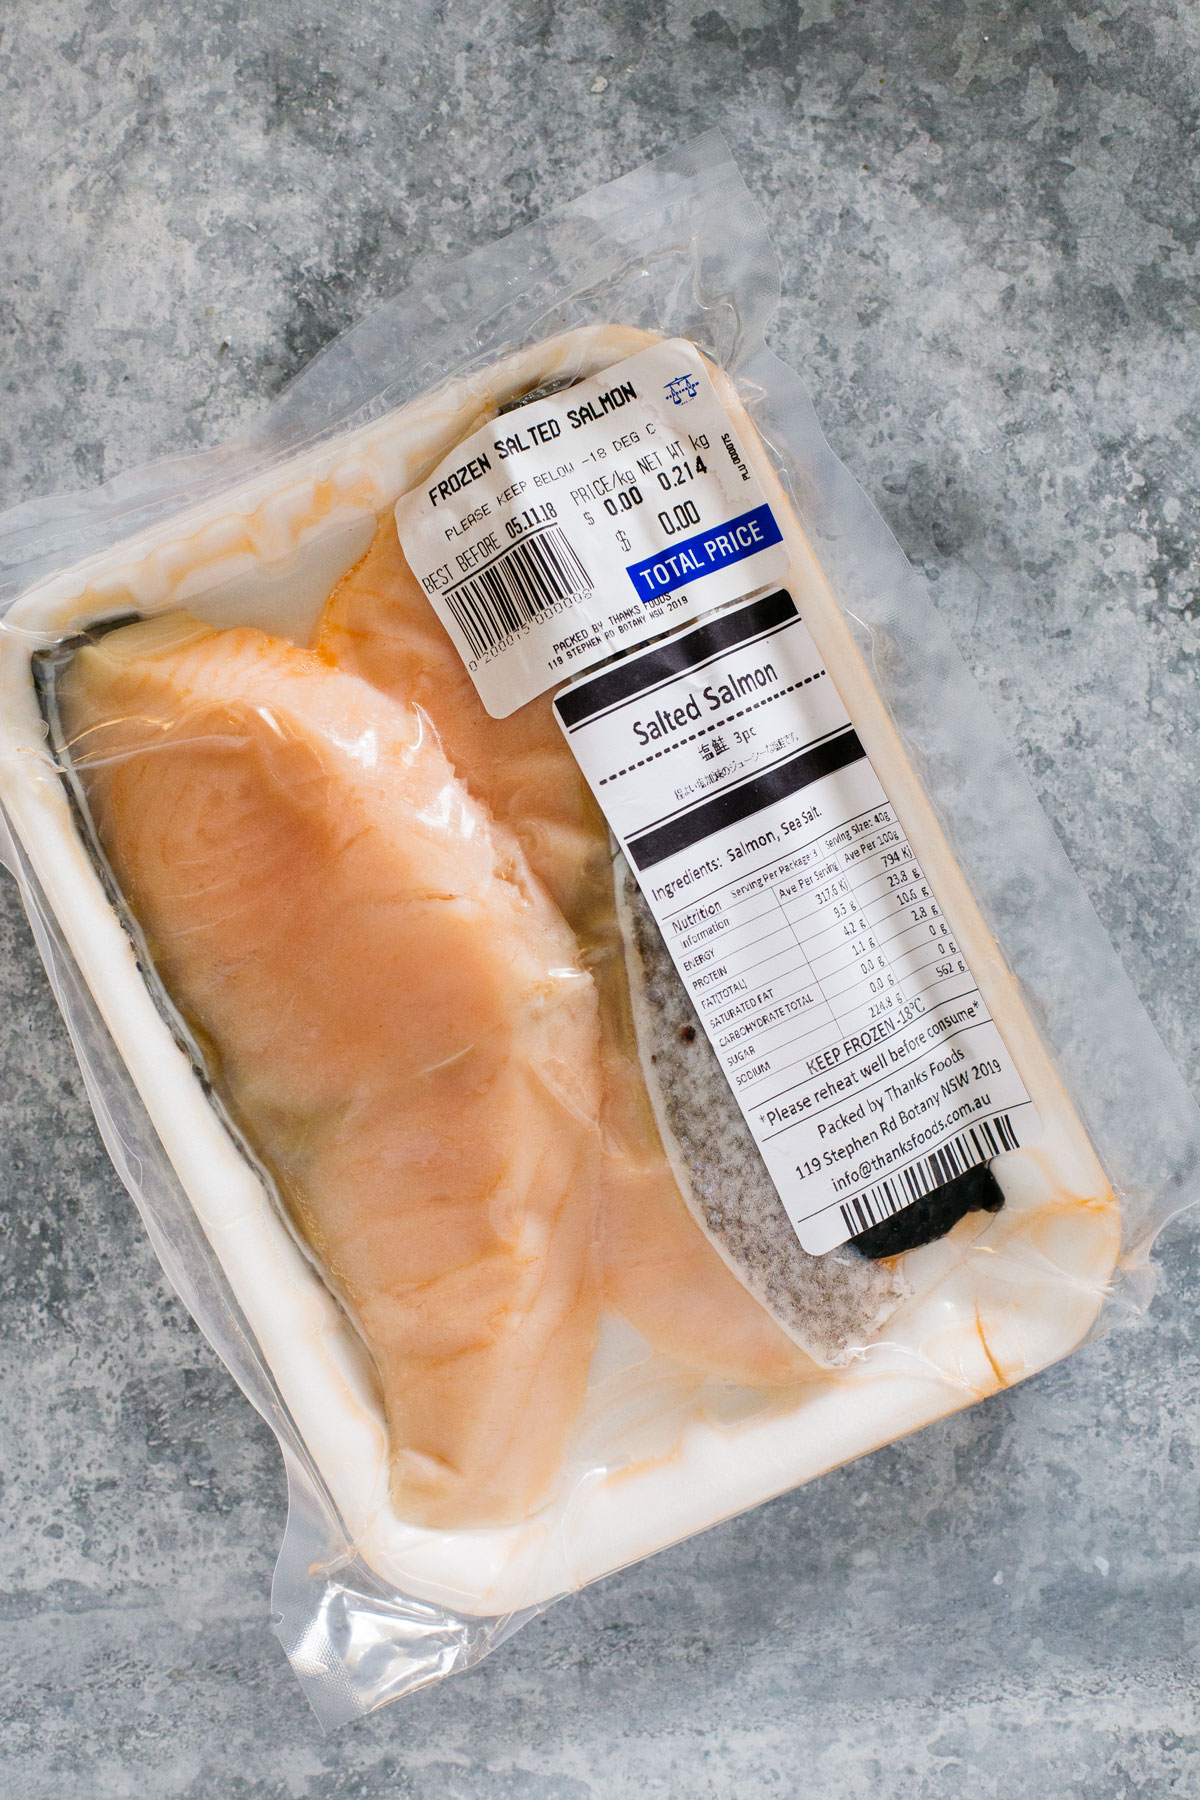 store bought three slices of salted salmon in store package